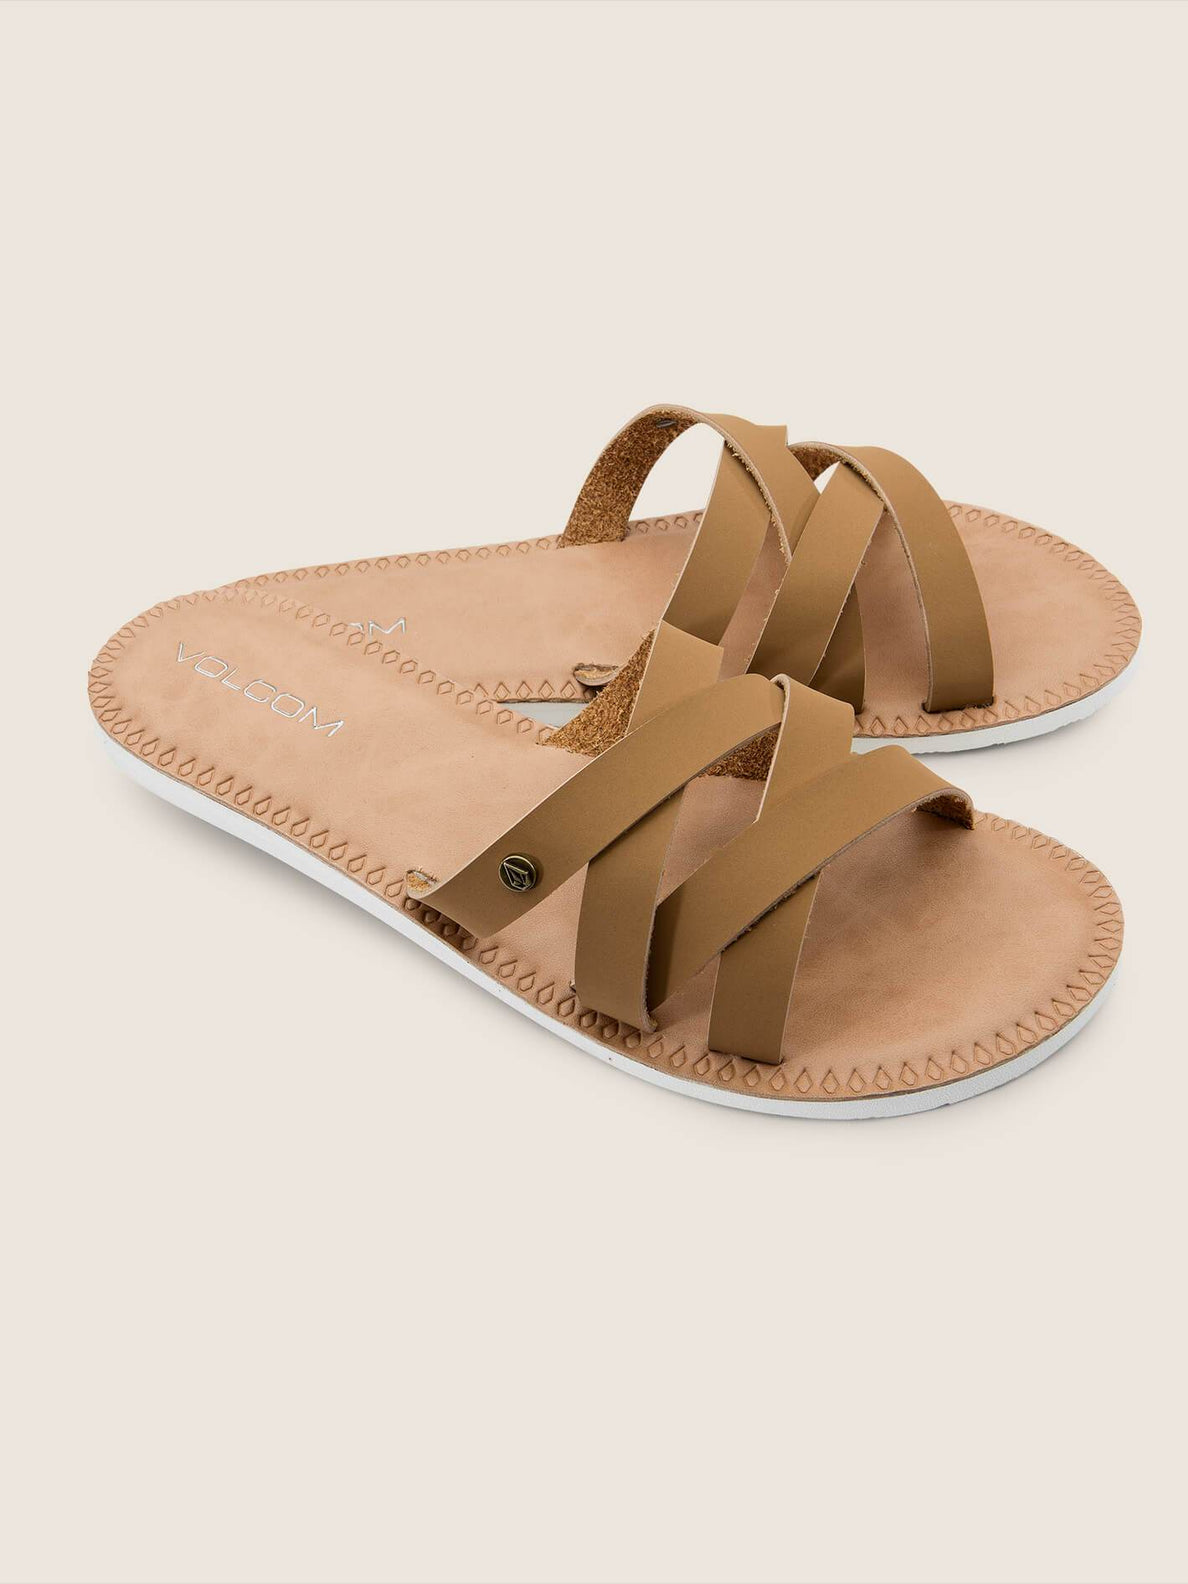 Garden Party Sandals In Tan, Front View